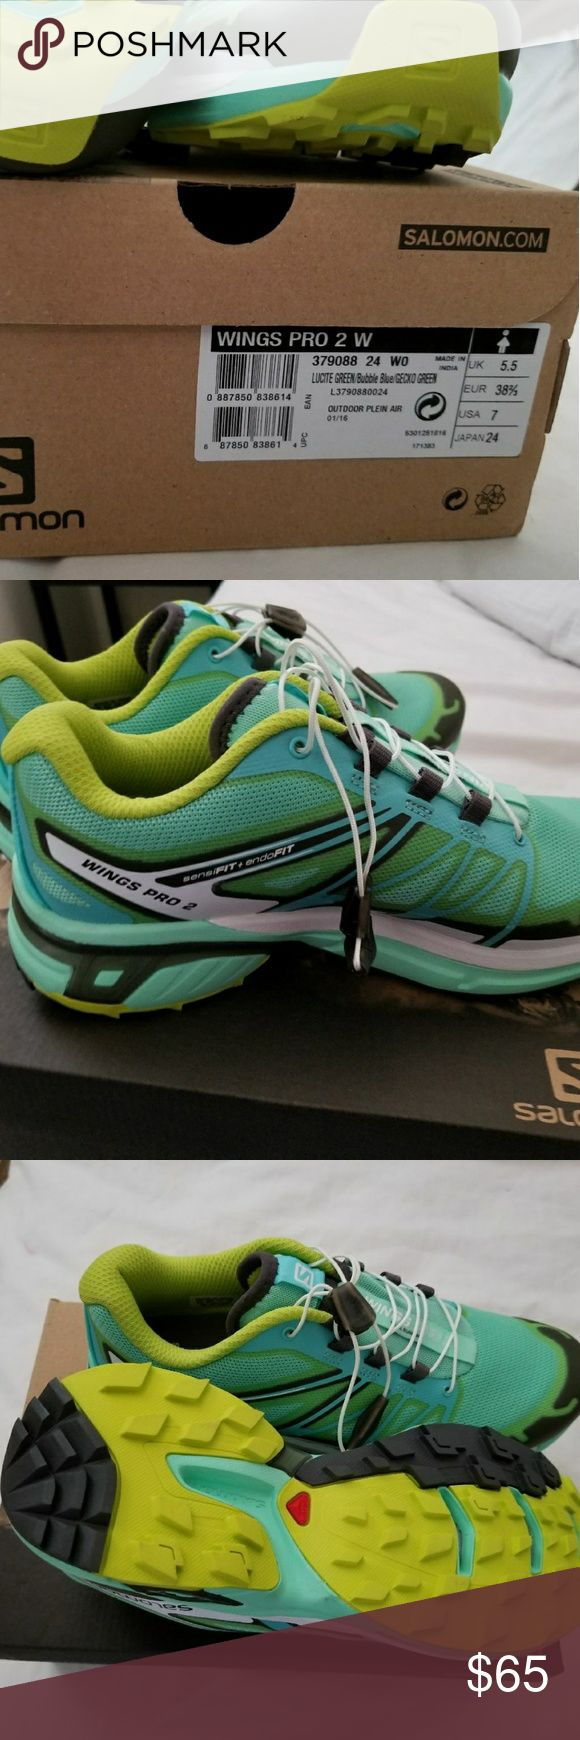 Salomon Wings Pro 2 for woman I sale Salomon Wings Pro 2 size 7 for woman never used brand new n box Salomon Shoes Athletic Shoes